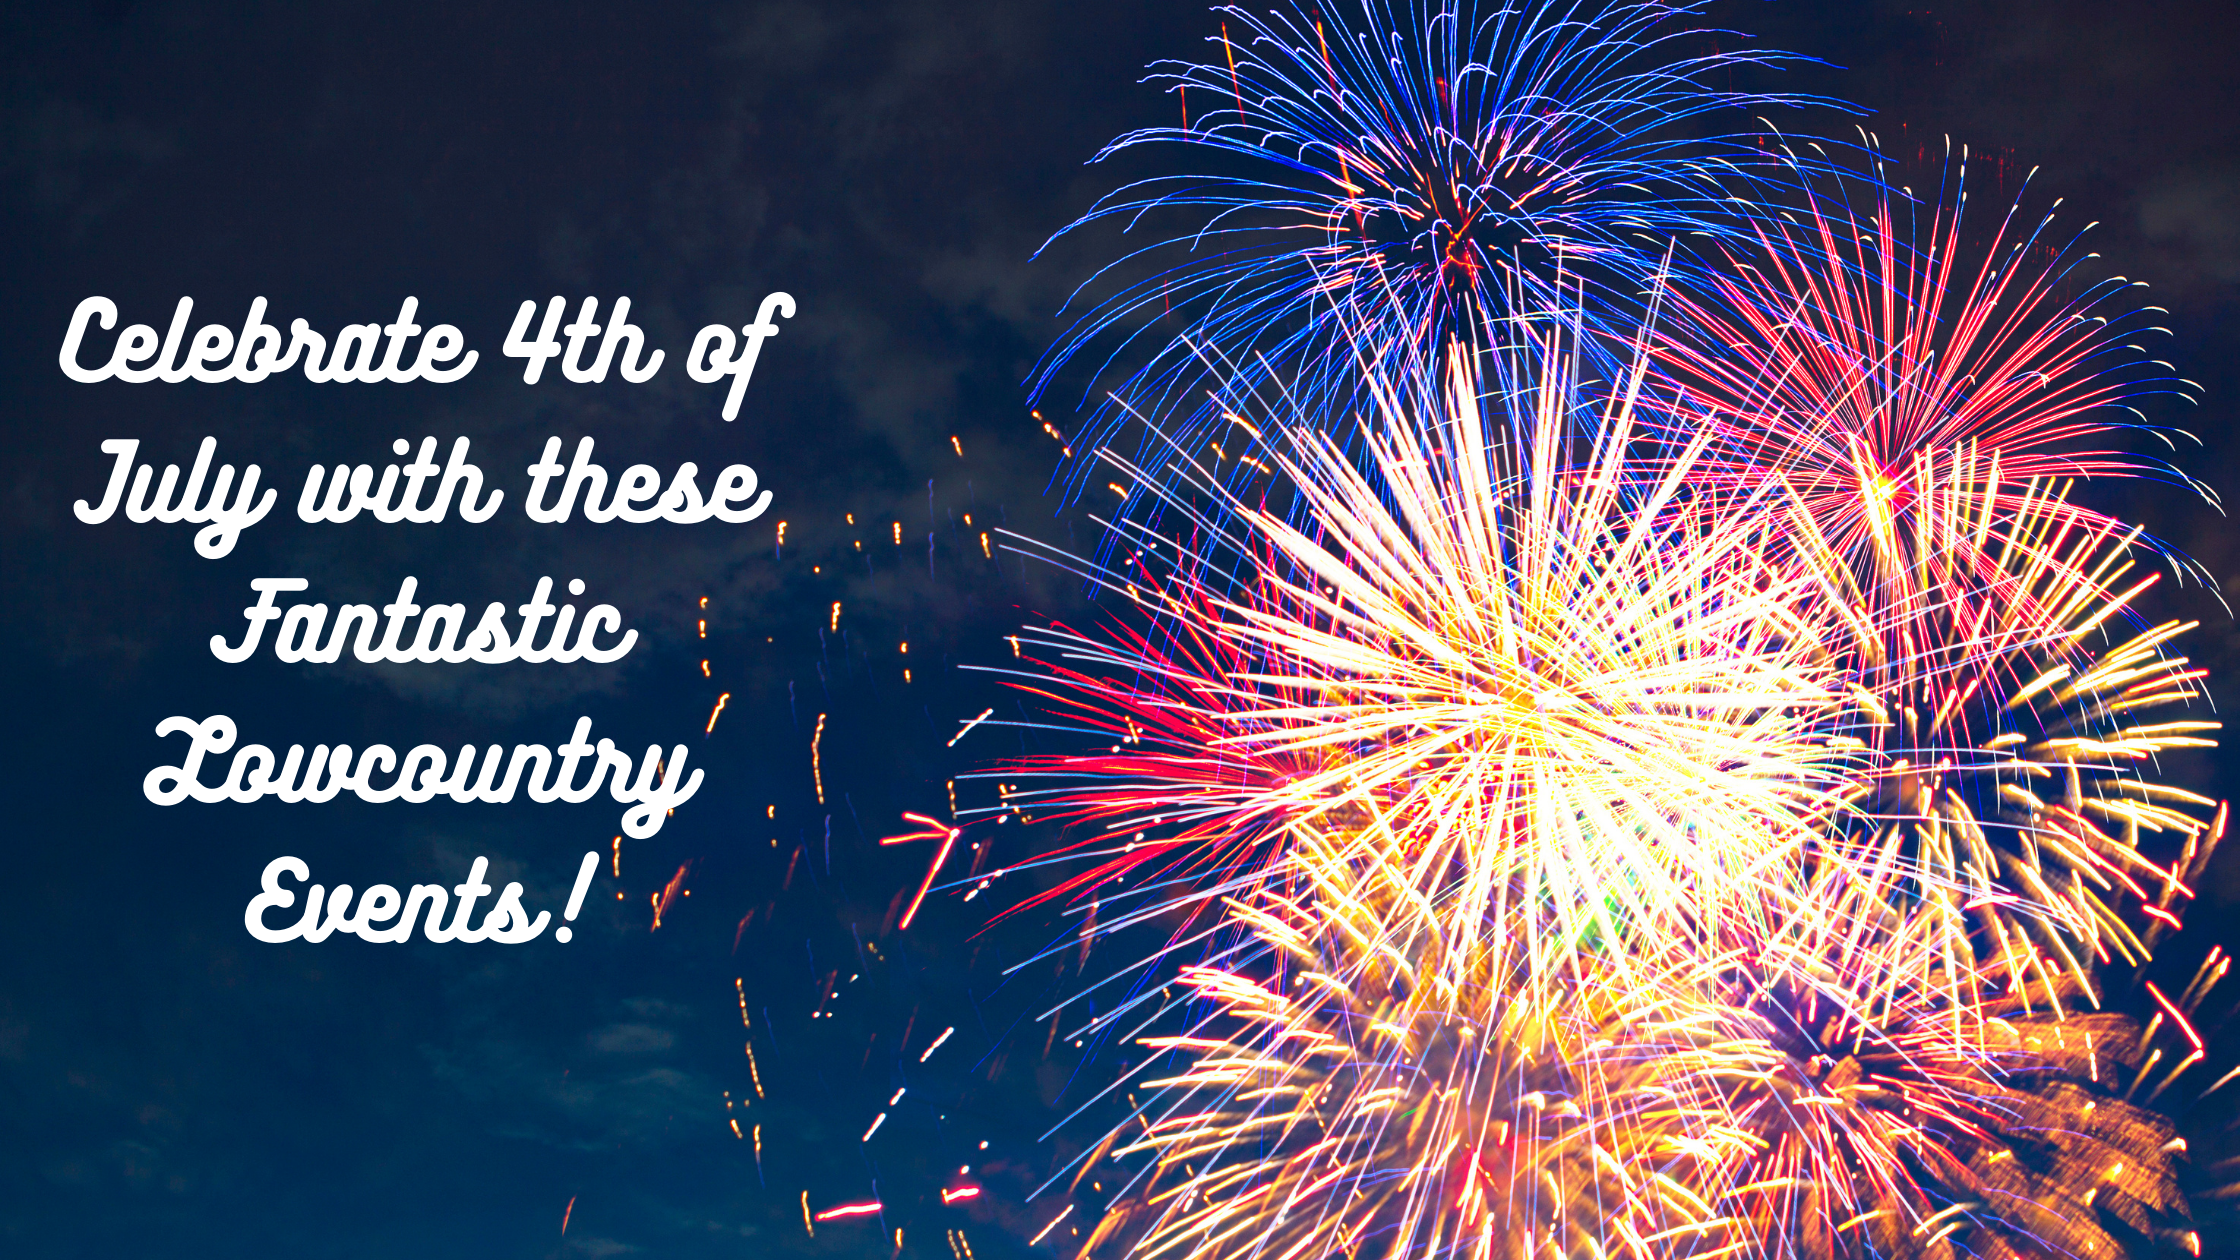 Get Ready to Celebrate the 4th of July in the Lowcountry!